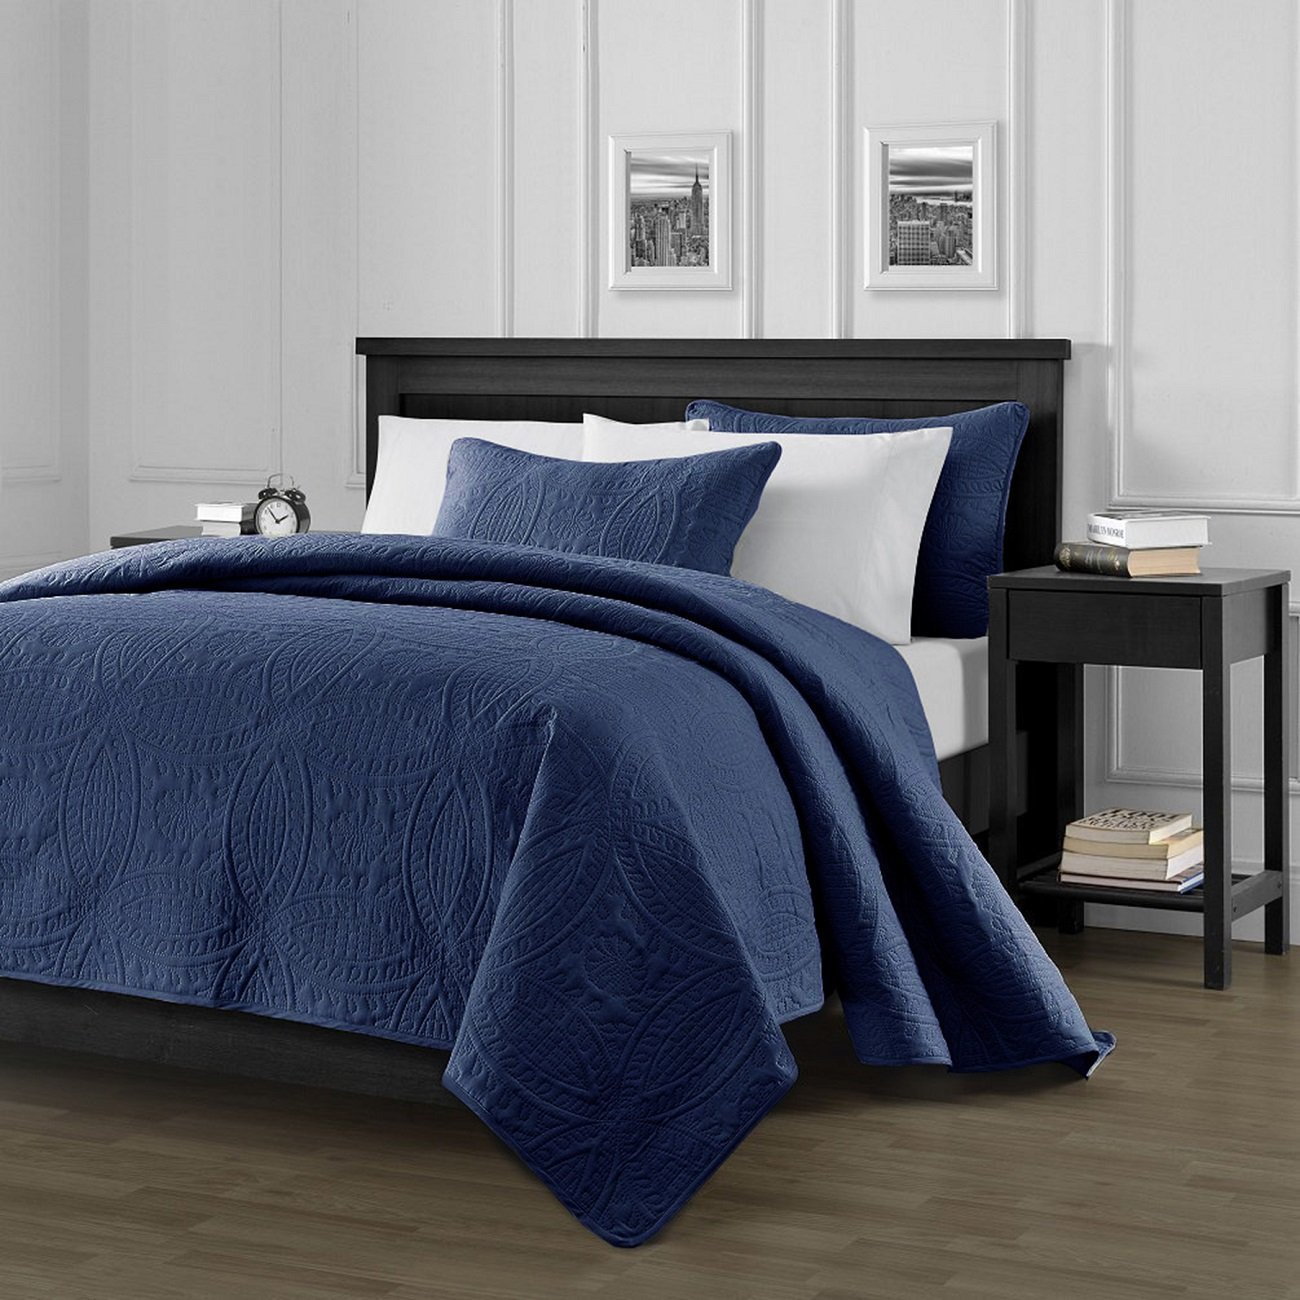 Chezmoi Collection Austin 3-Piece Oversized Bedspread Coverlet Set King, Navy